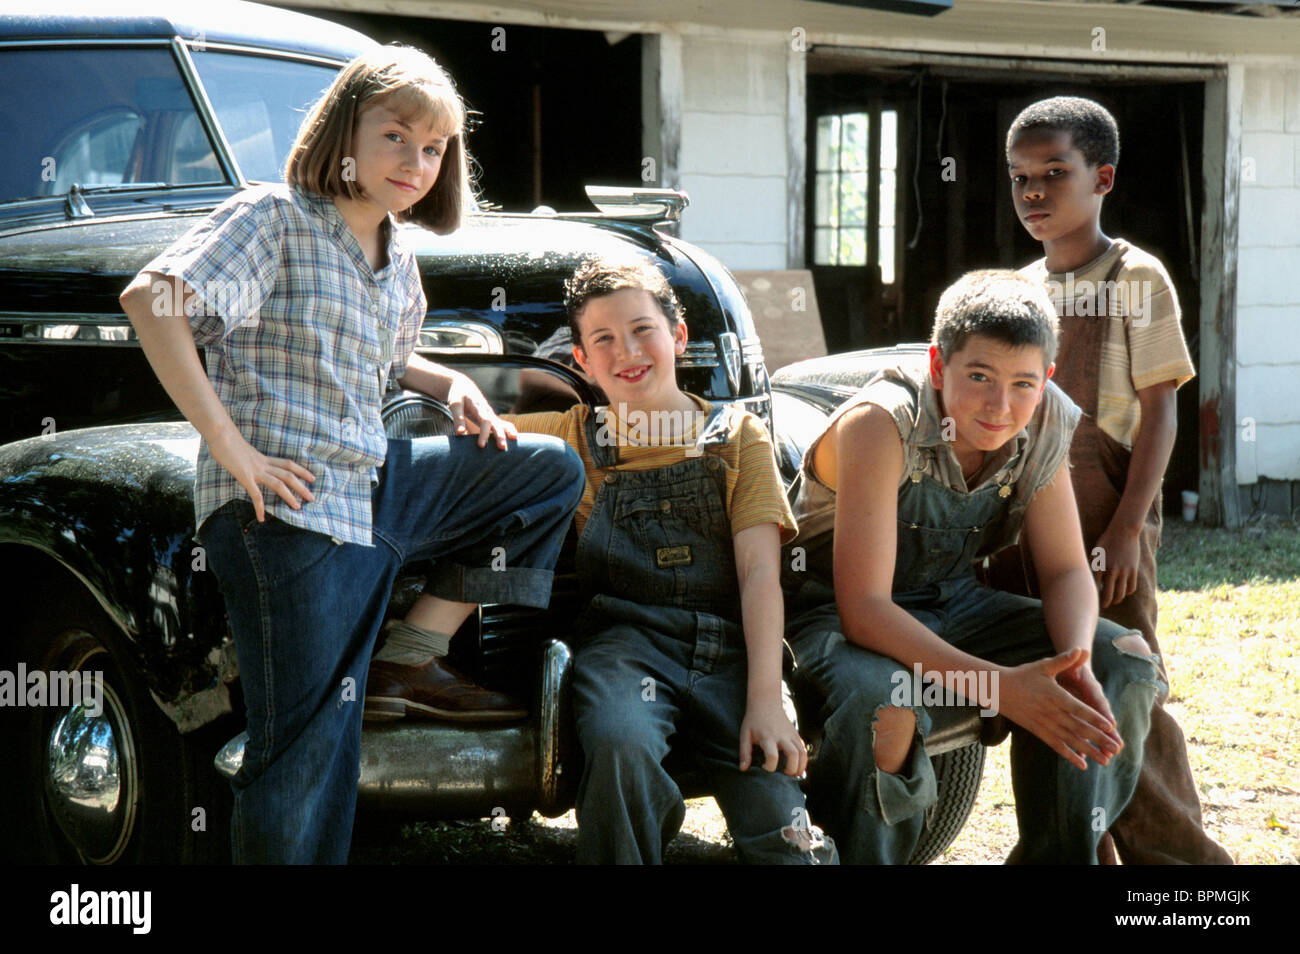 ASHLEY ROSE ORR HARRISON CHAD NICHOLAS BRAUN & DAJON MATTHEWS CARRY ME HOME (2004) - Stock Image